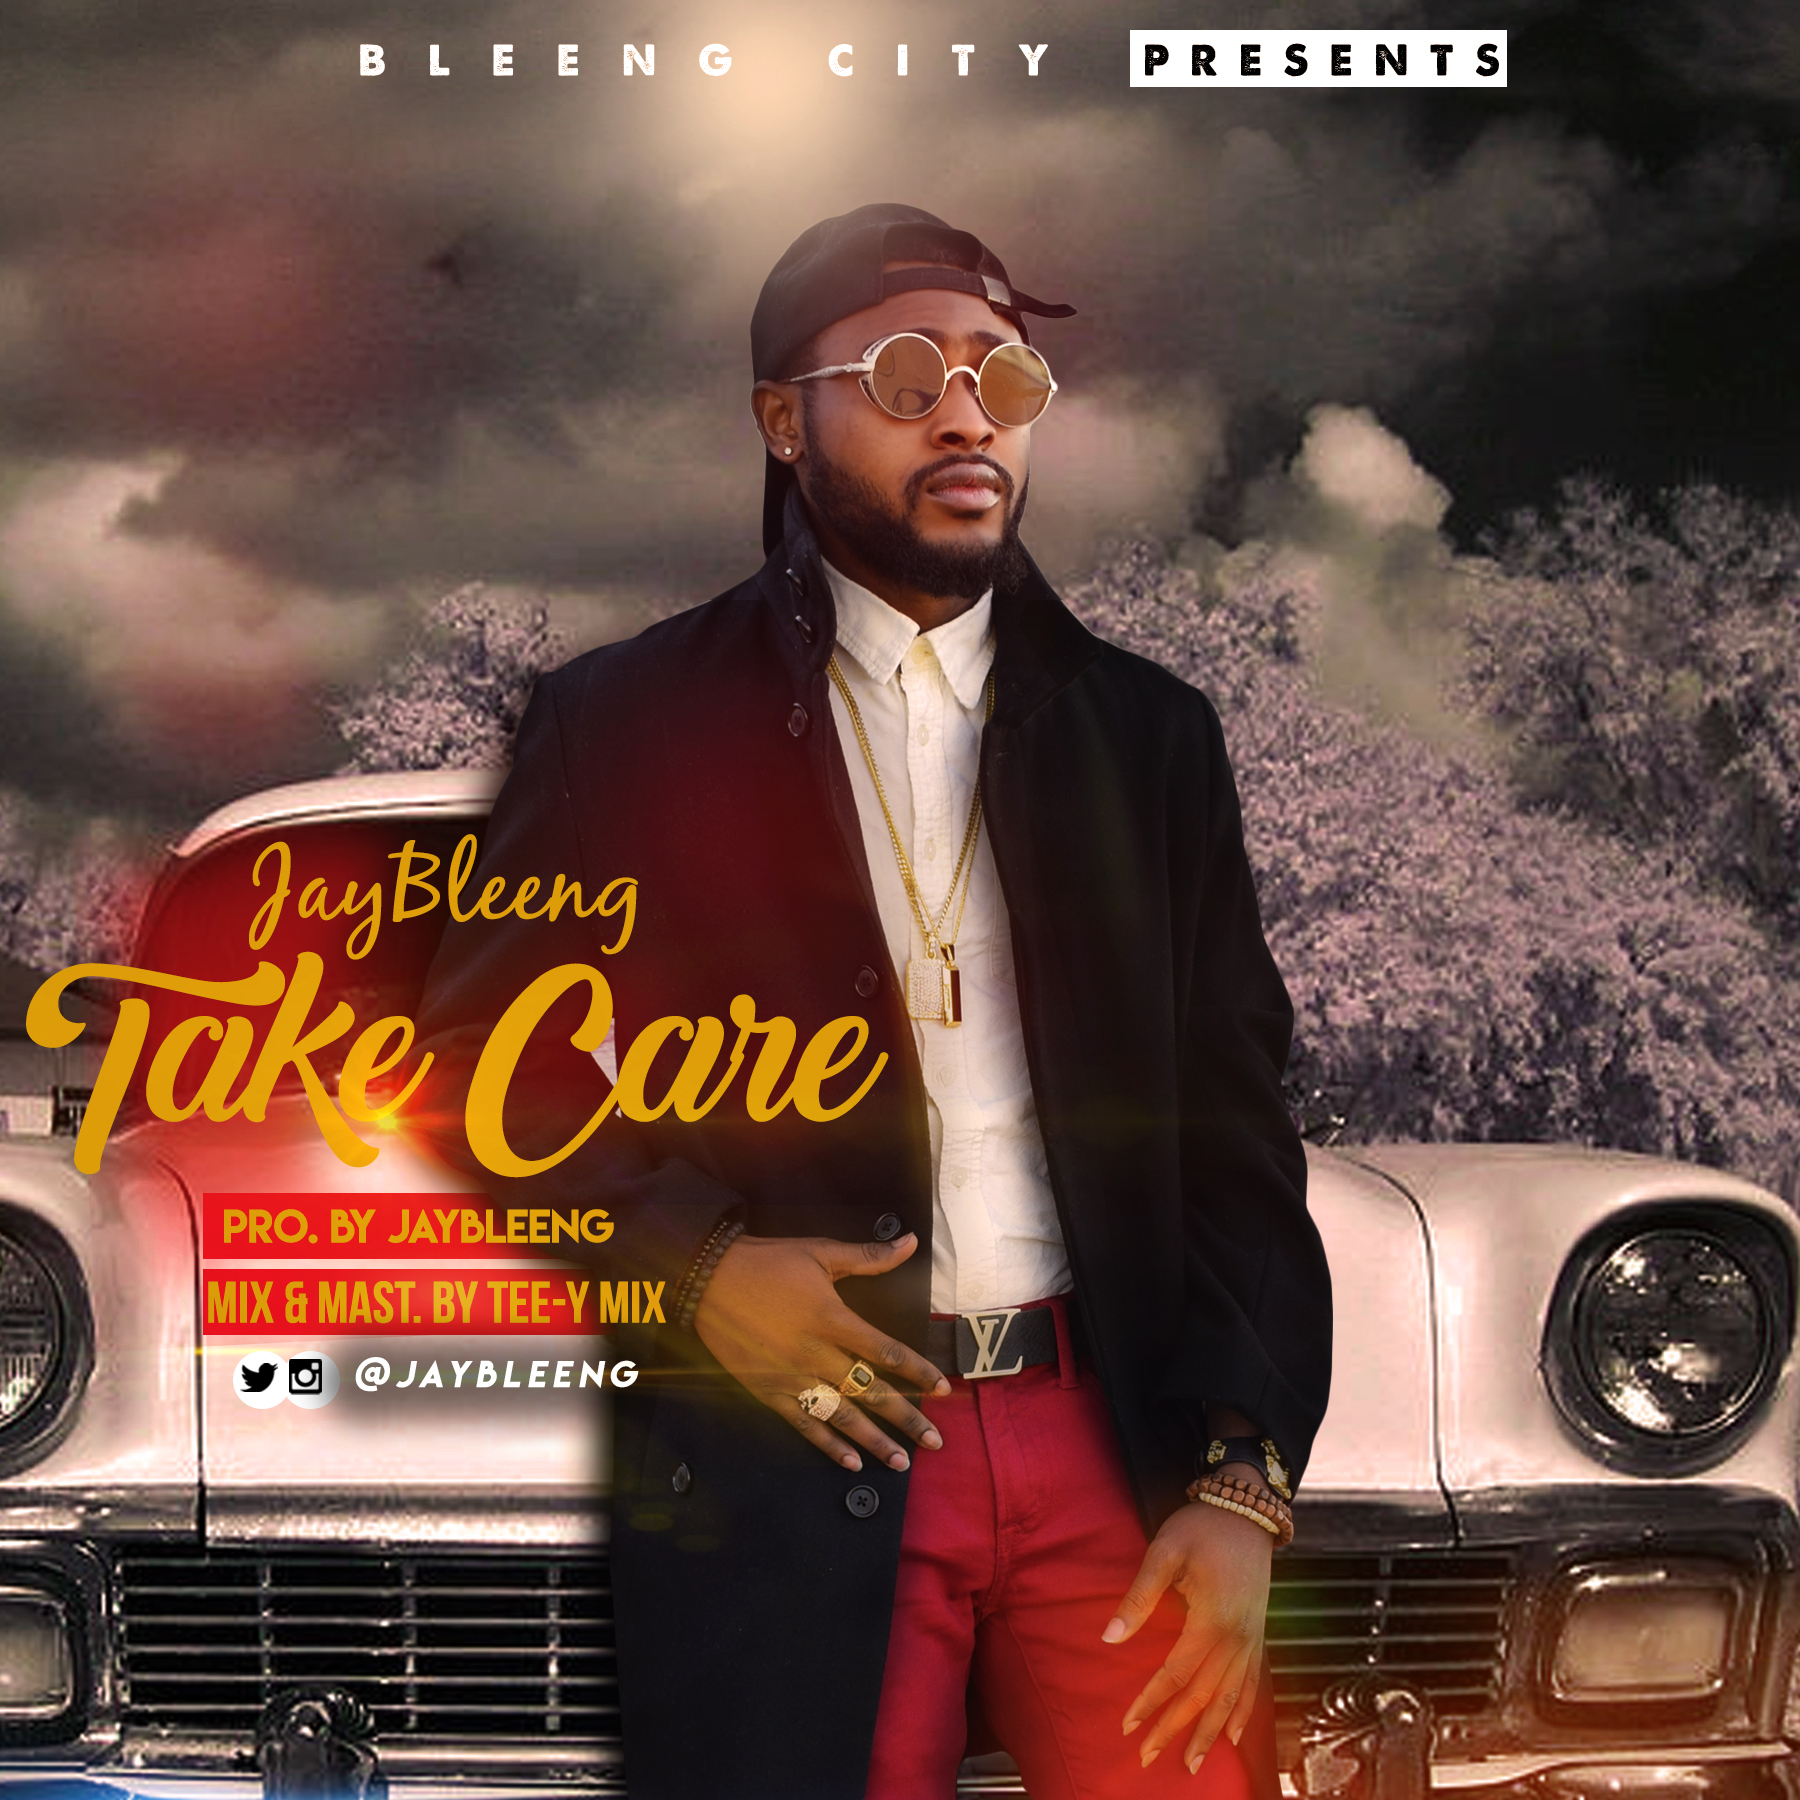 JayBleeng – Take Care